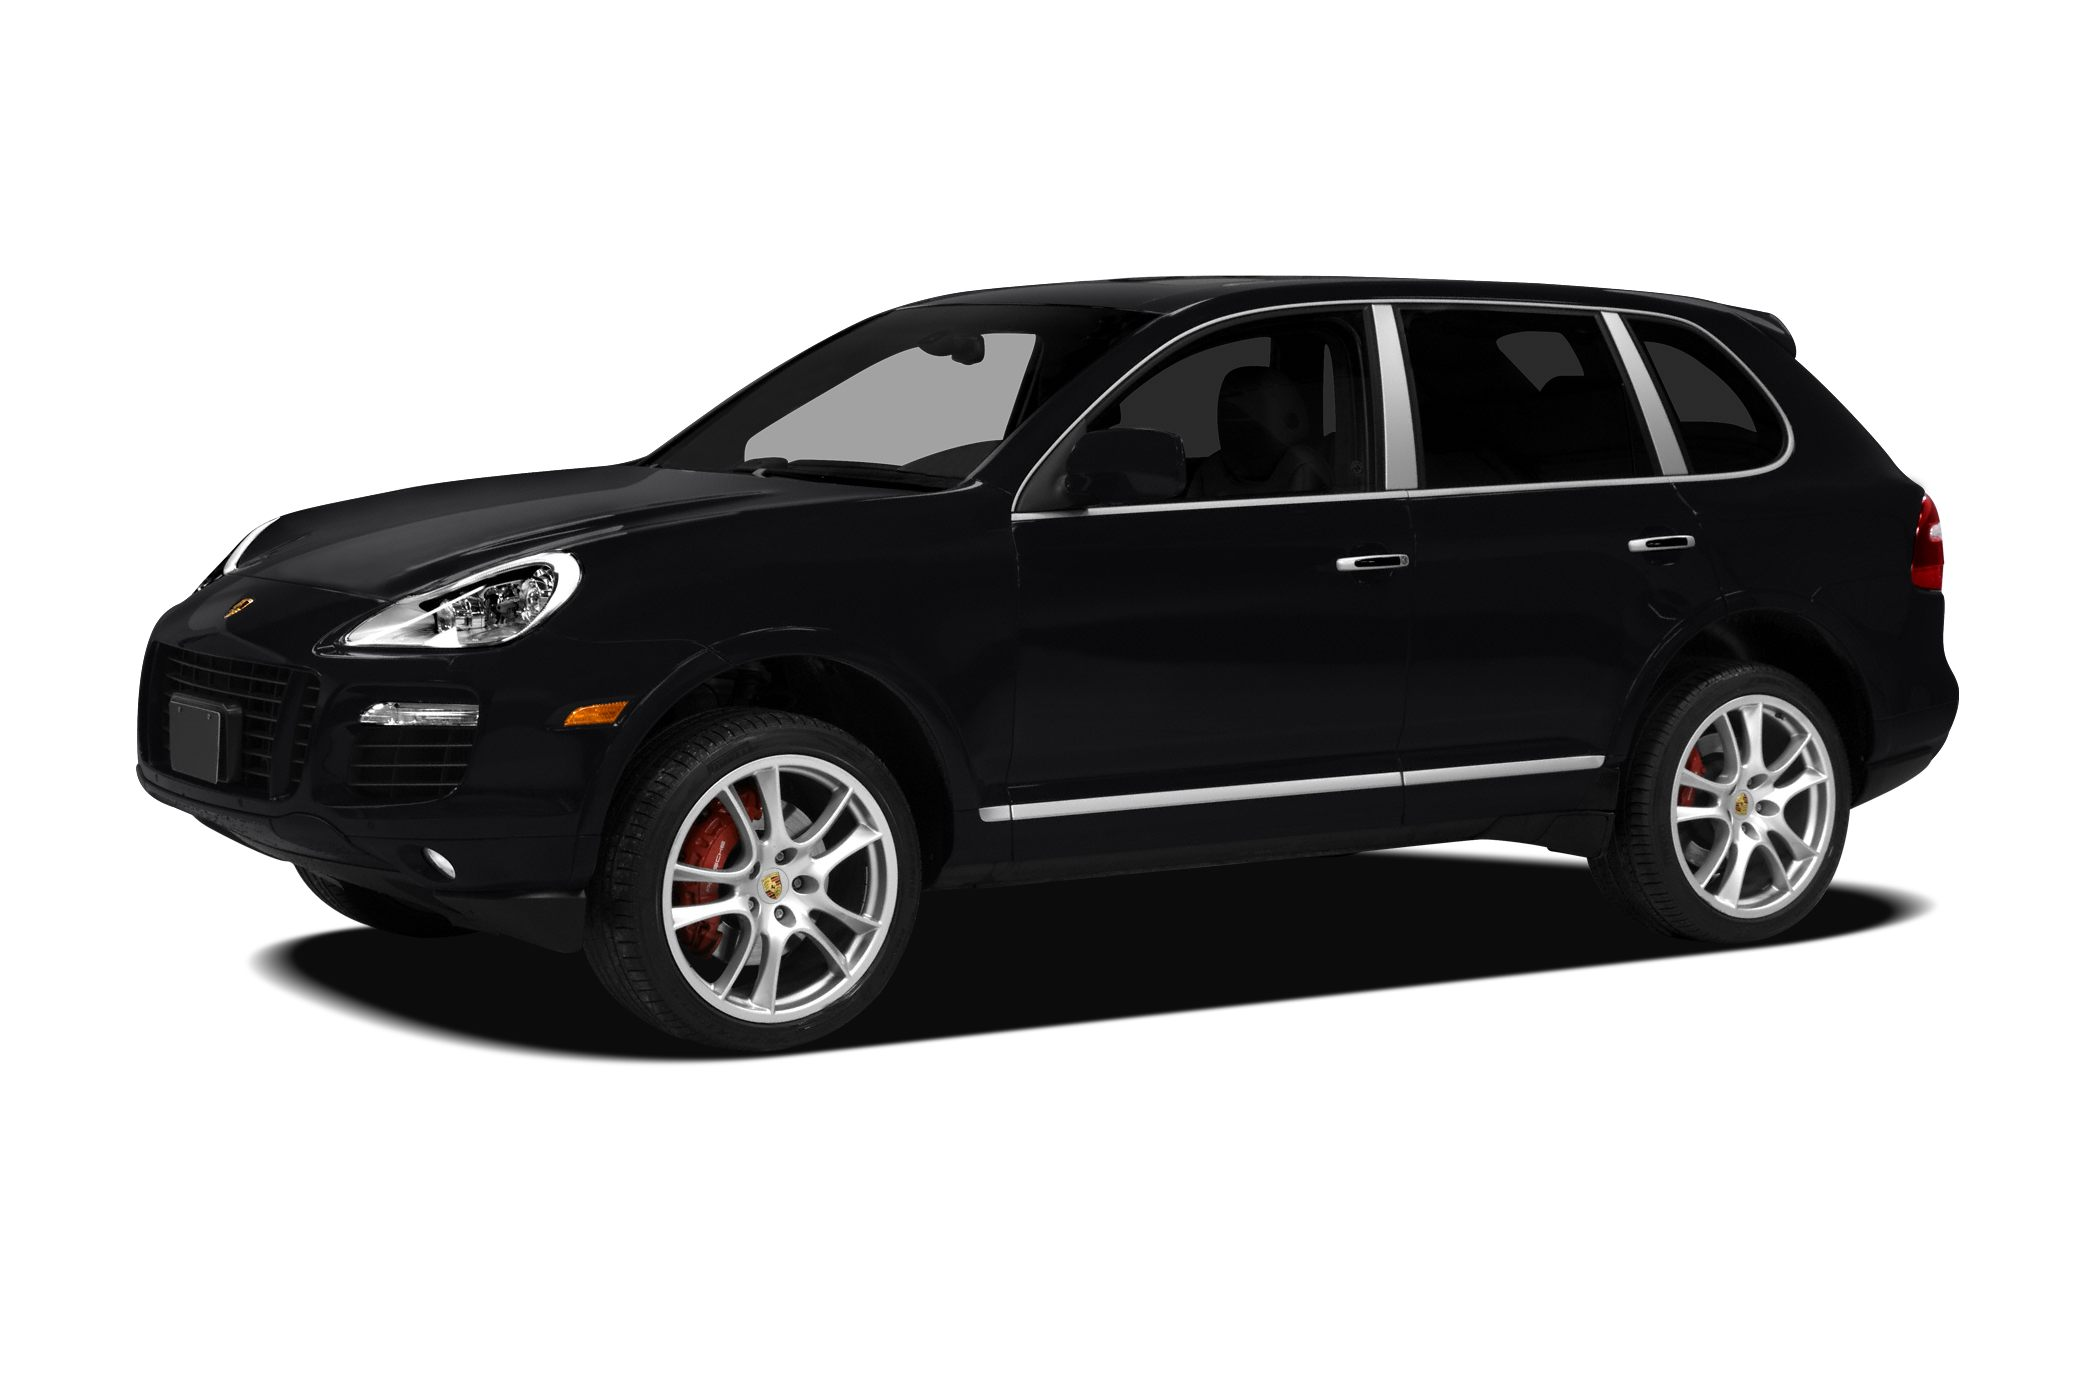 2009 Porsche Cayenne S SUV for sale in Aurora for $32,335 with 47,263 miles